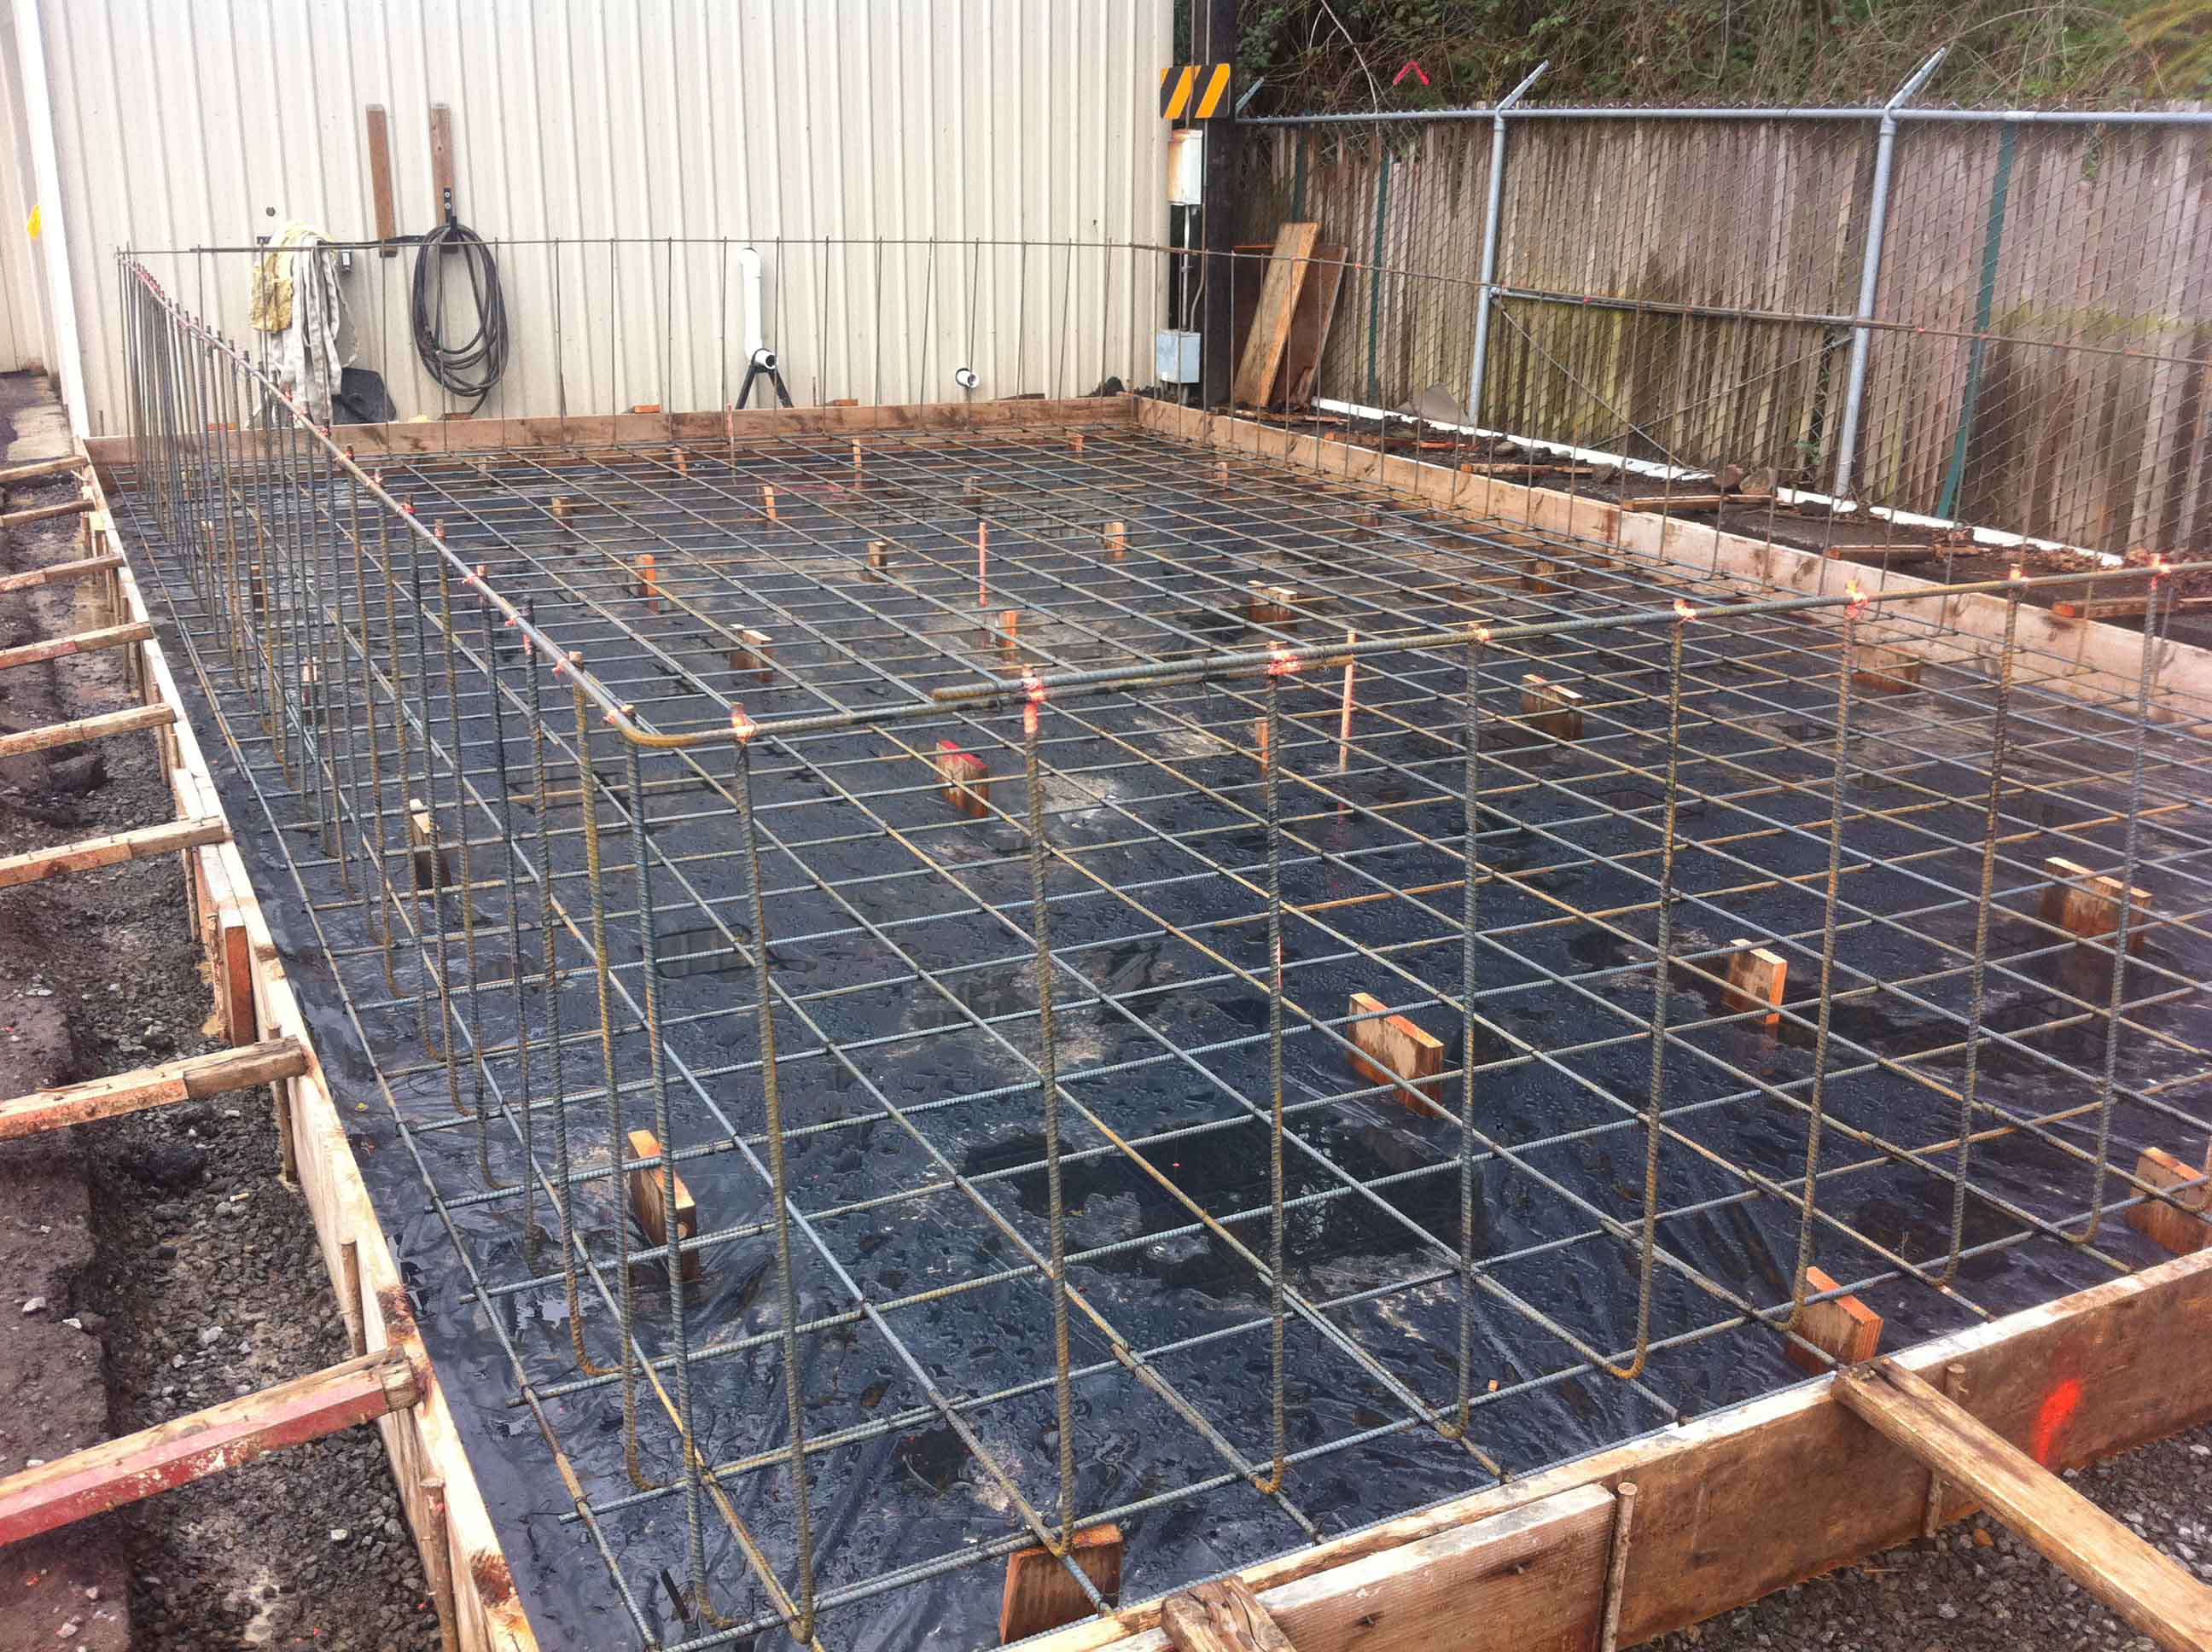 Rebar and foundation forming